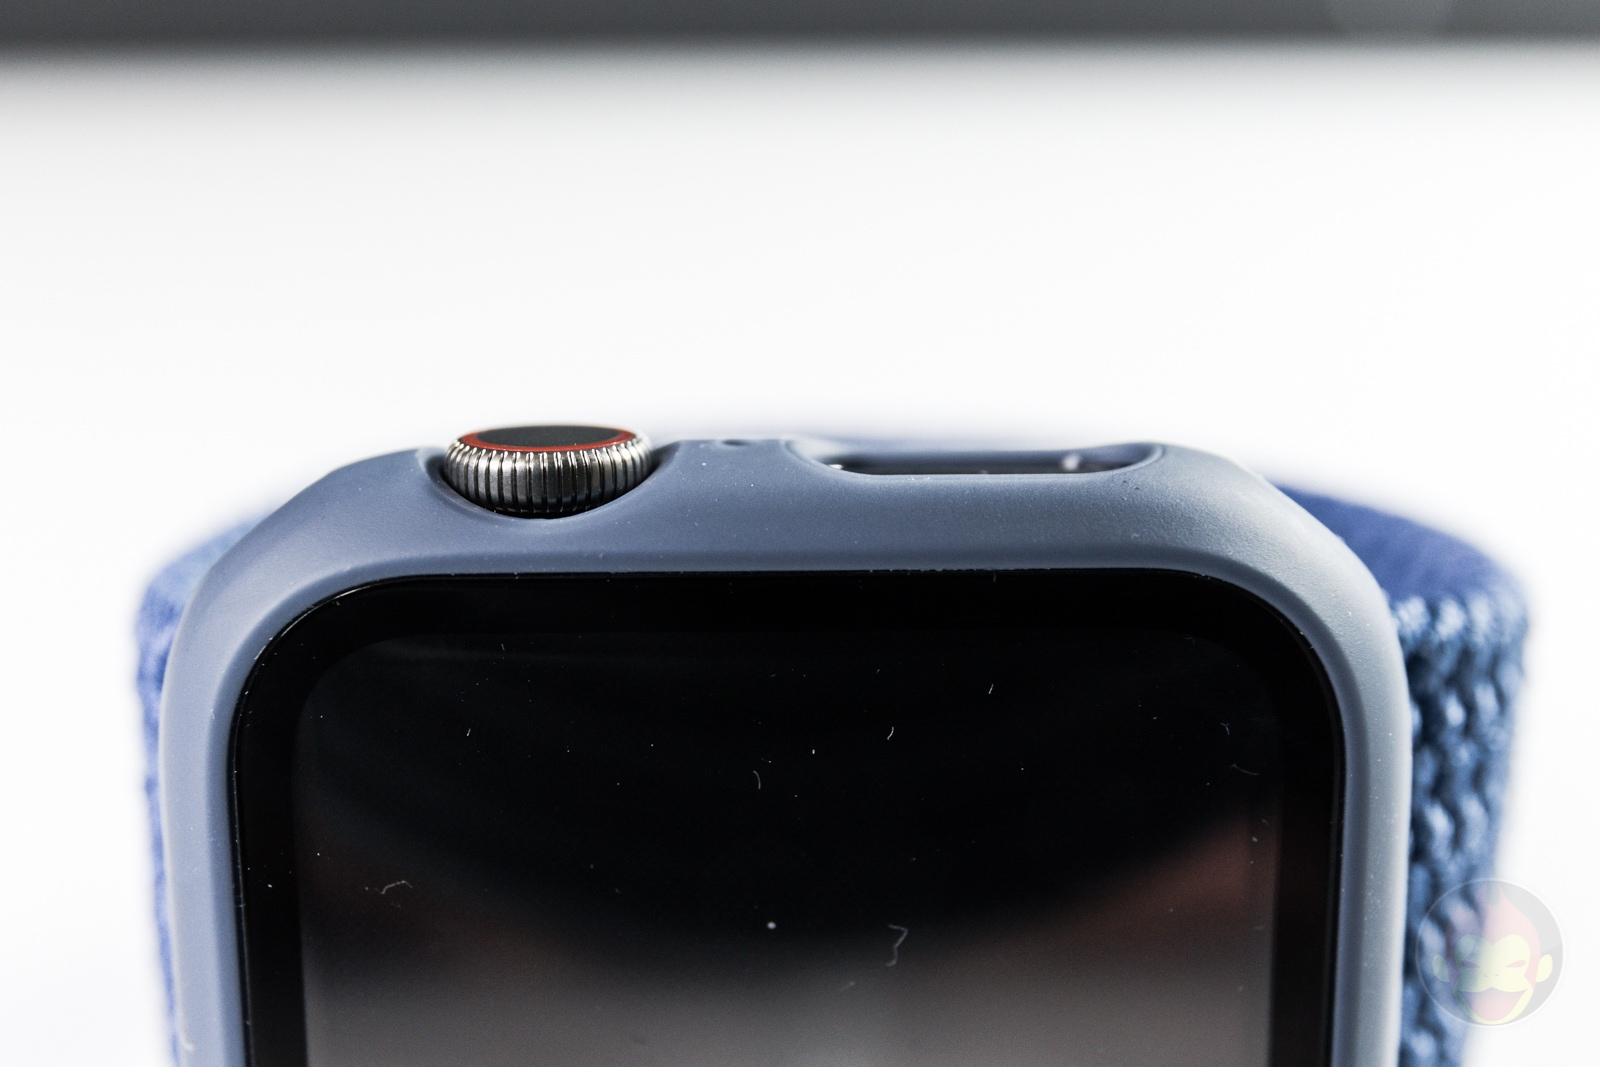 Reflying Apple Watch Case Review 06